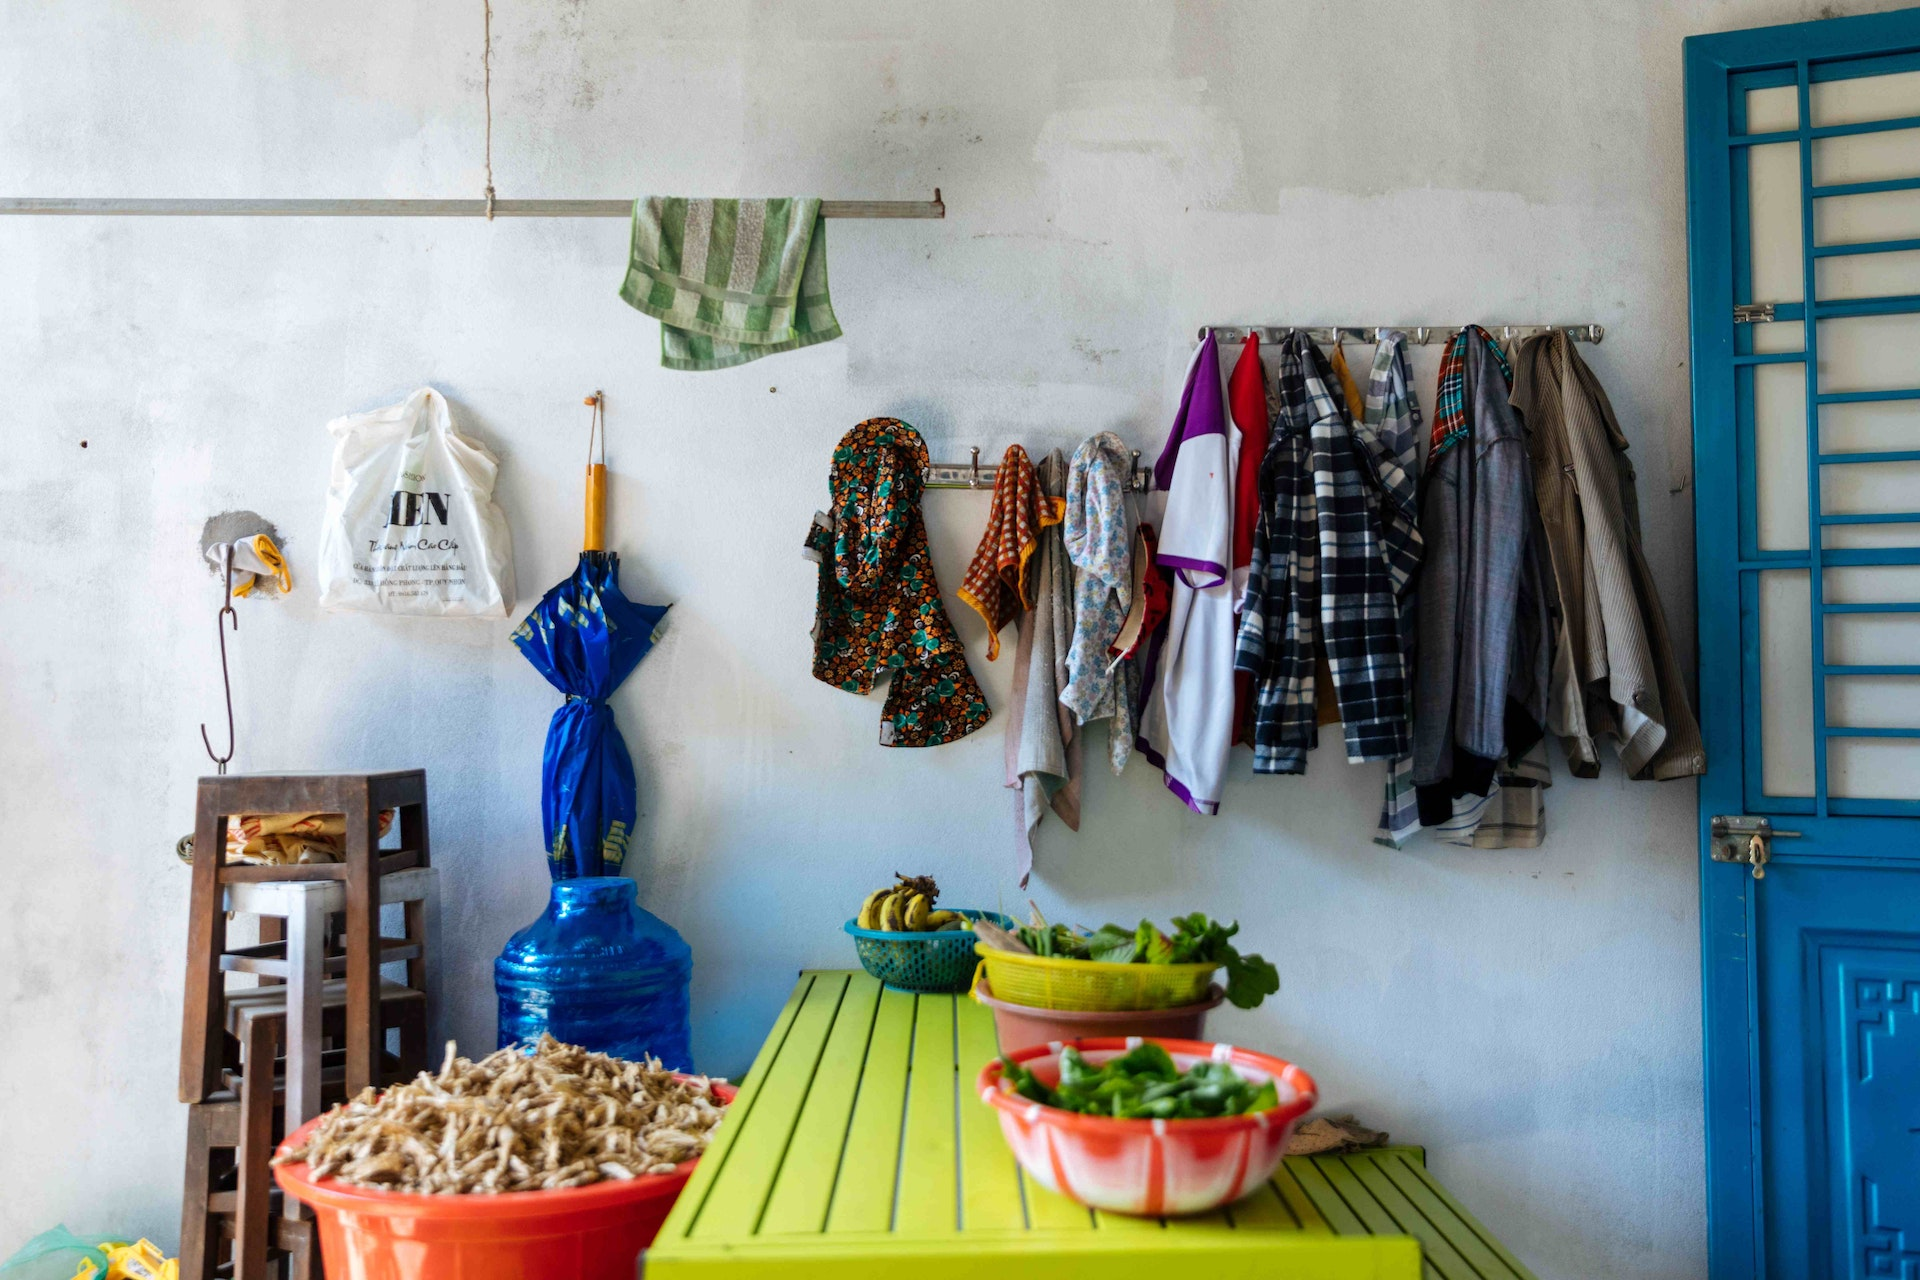 Cataract patient Tam's home in Quy Nhon, Vietnam